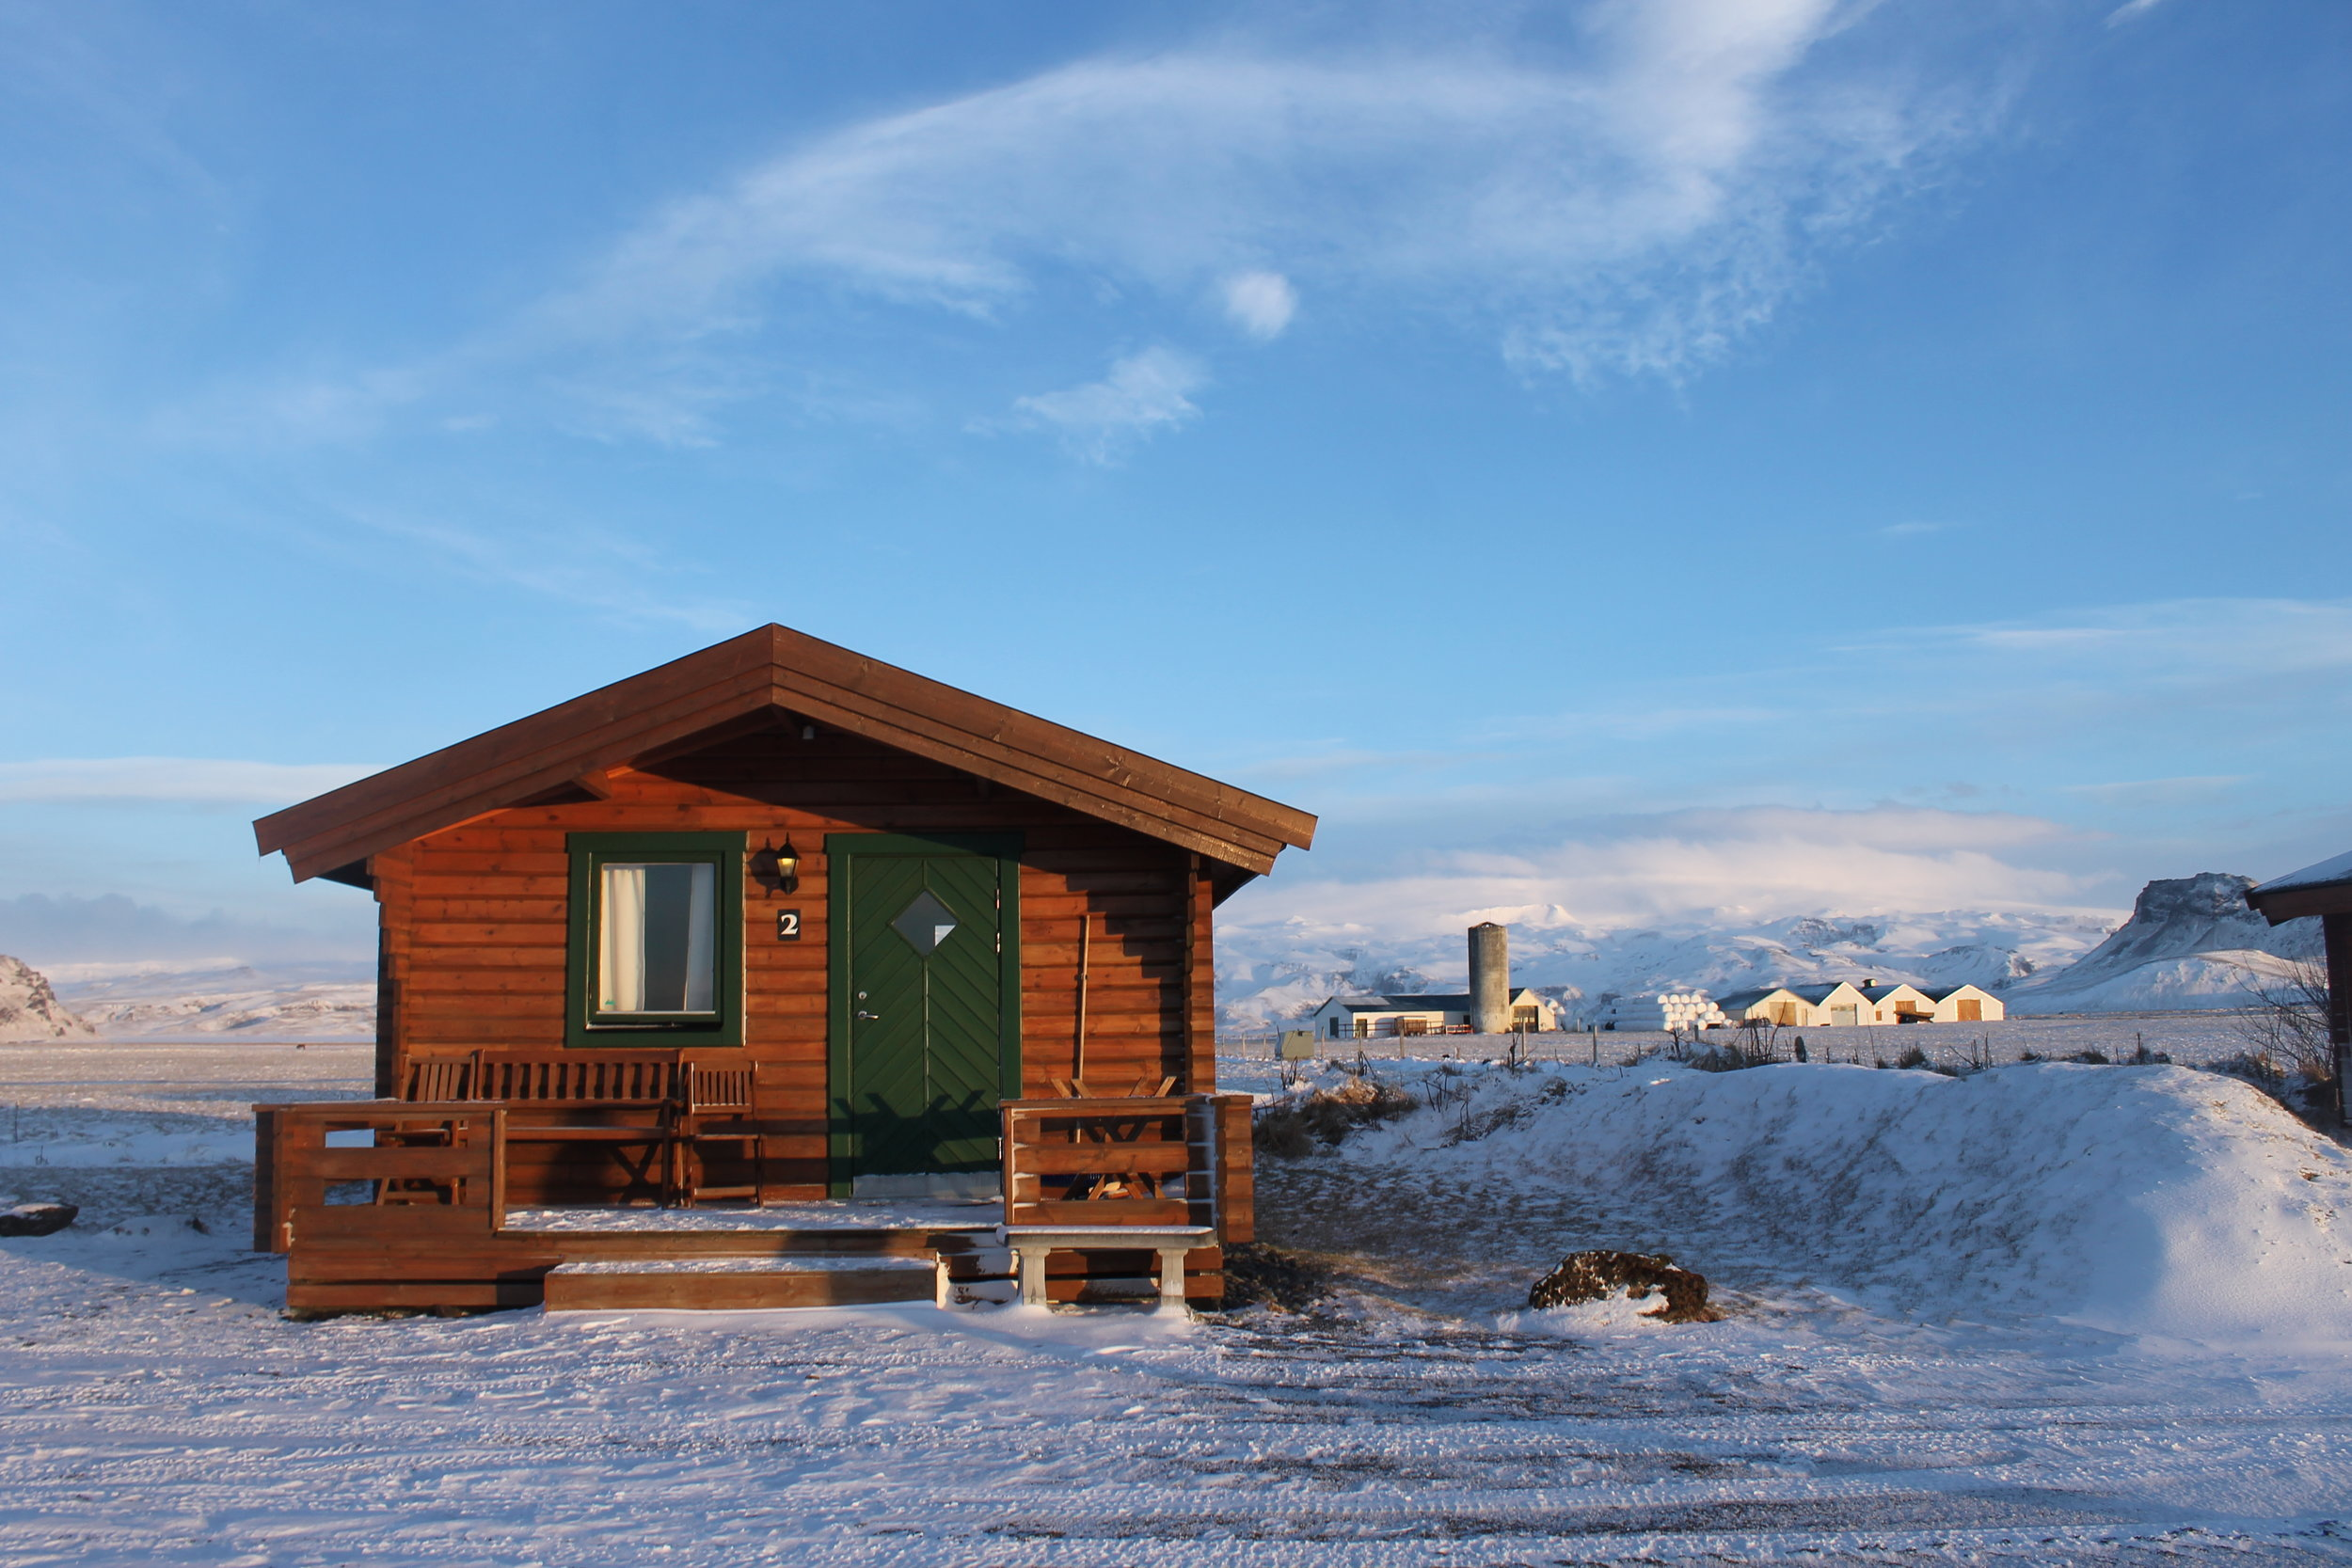 Our little home for the night.Hvoll Cottages in the south, about an hour from to Vík.